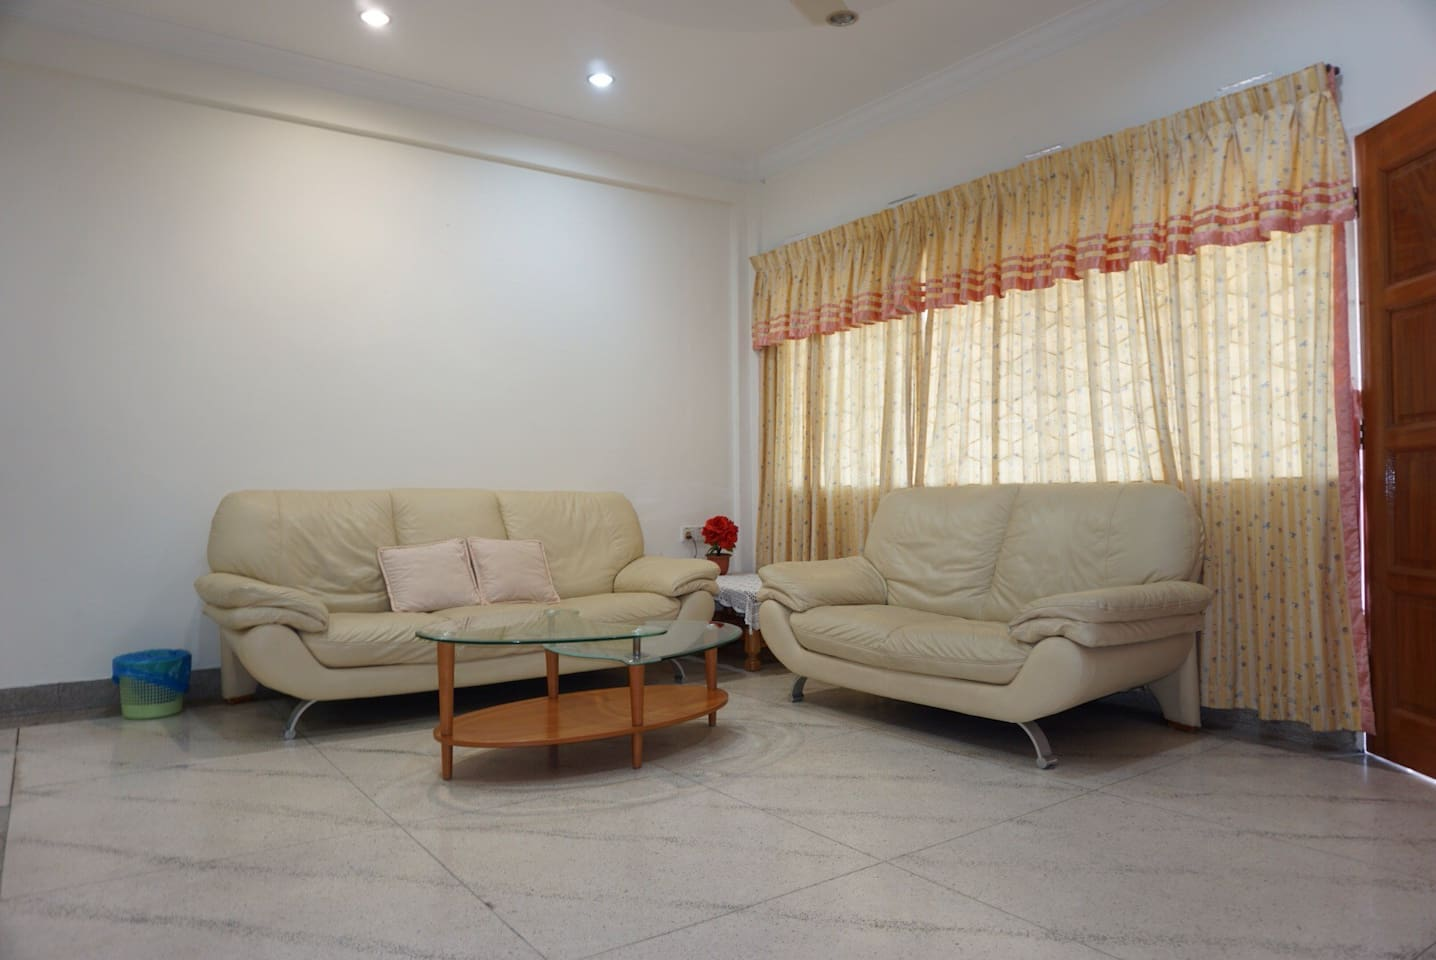 Spacious living room with a good chat with travel buddies